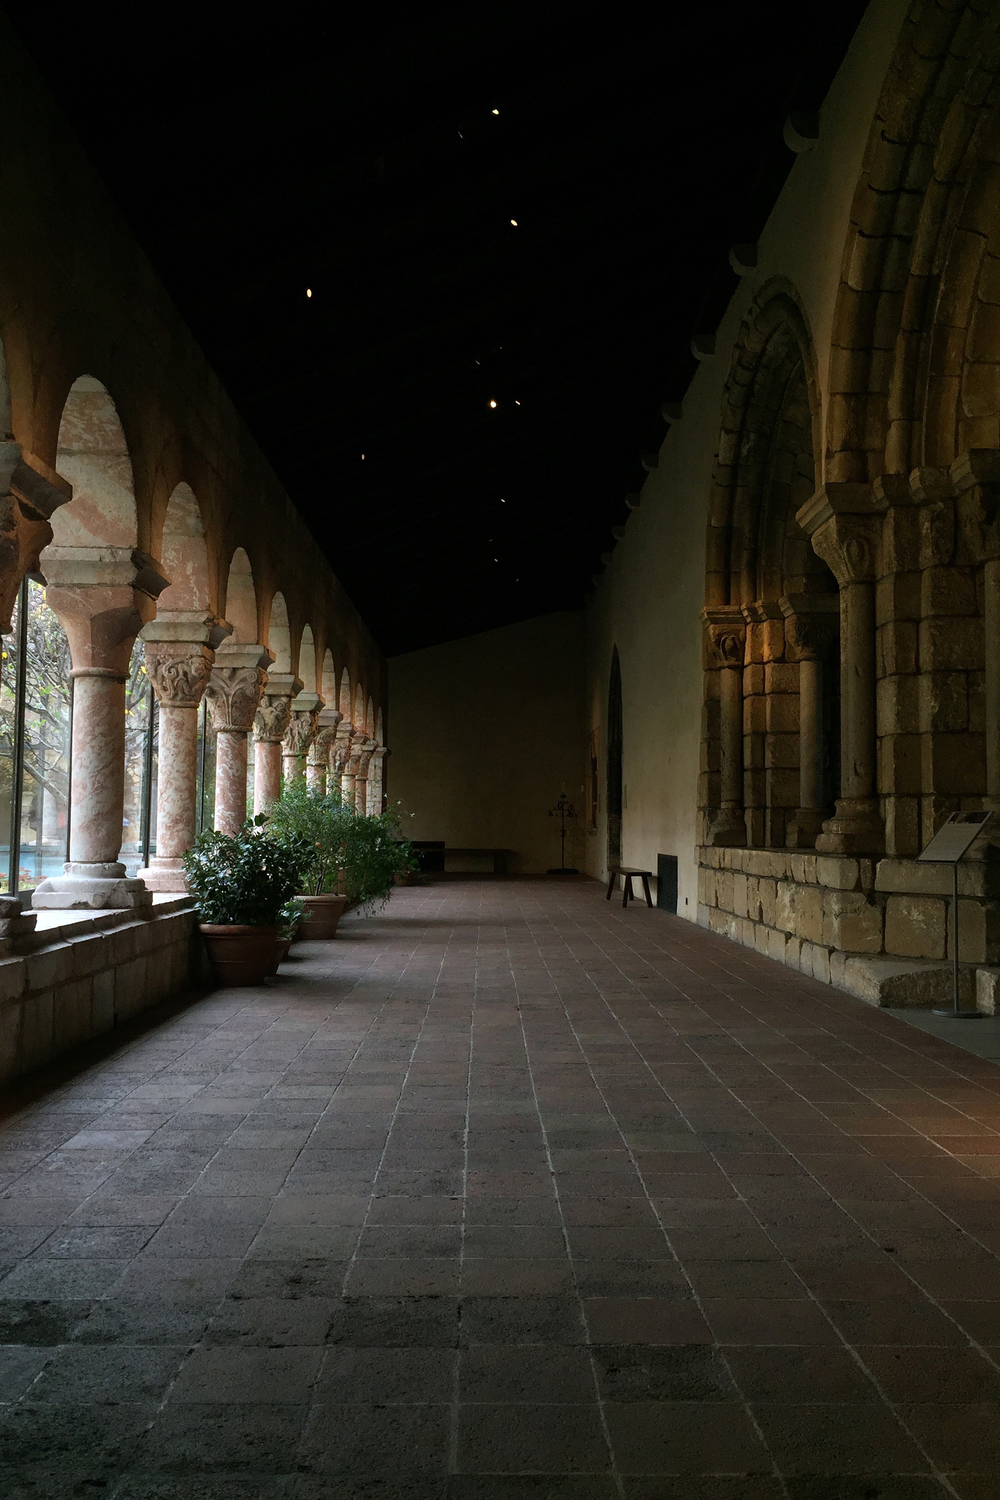 A garden's wing inside the Cloisters - November 6, 2015